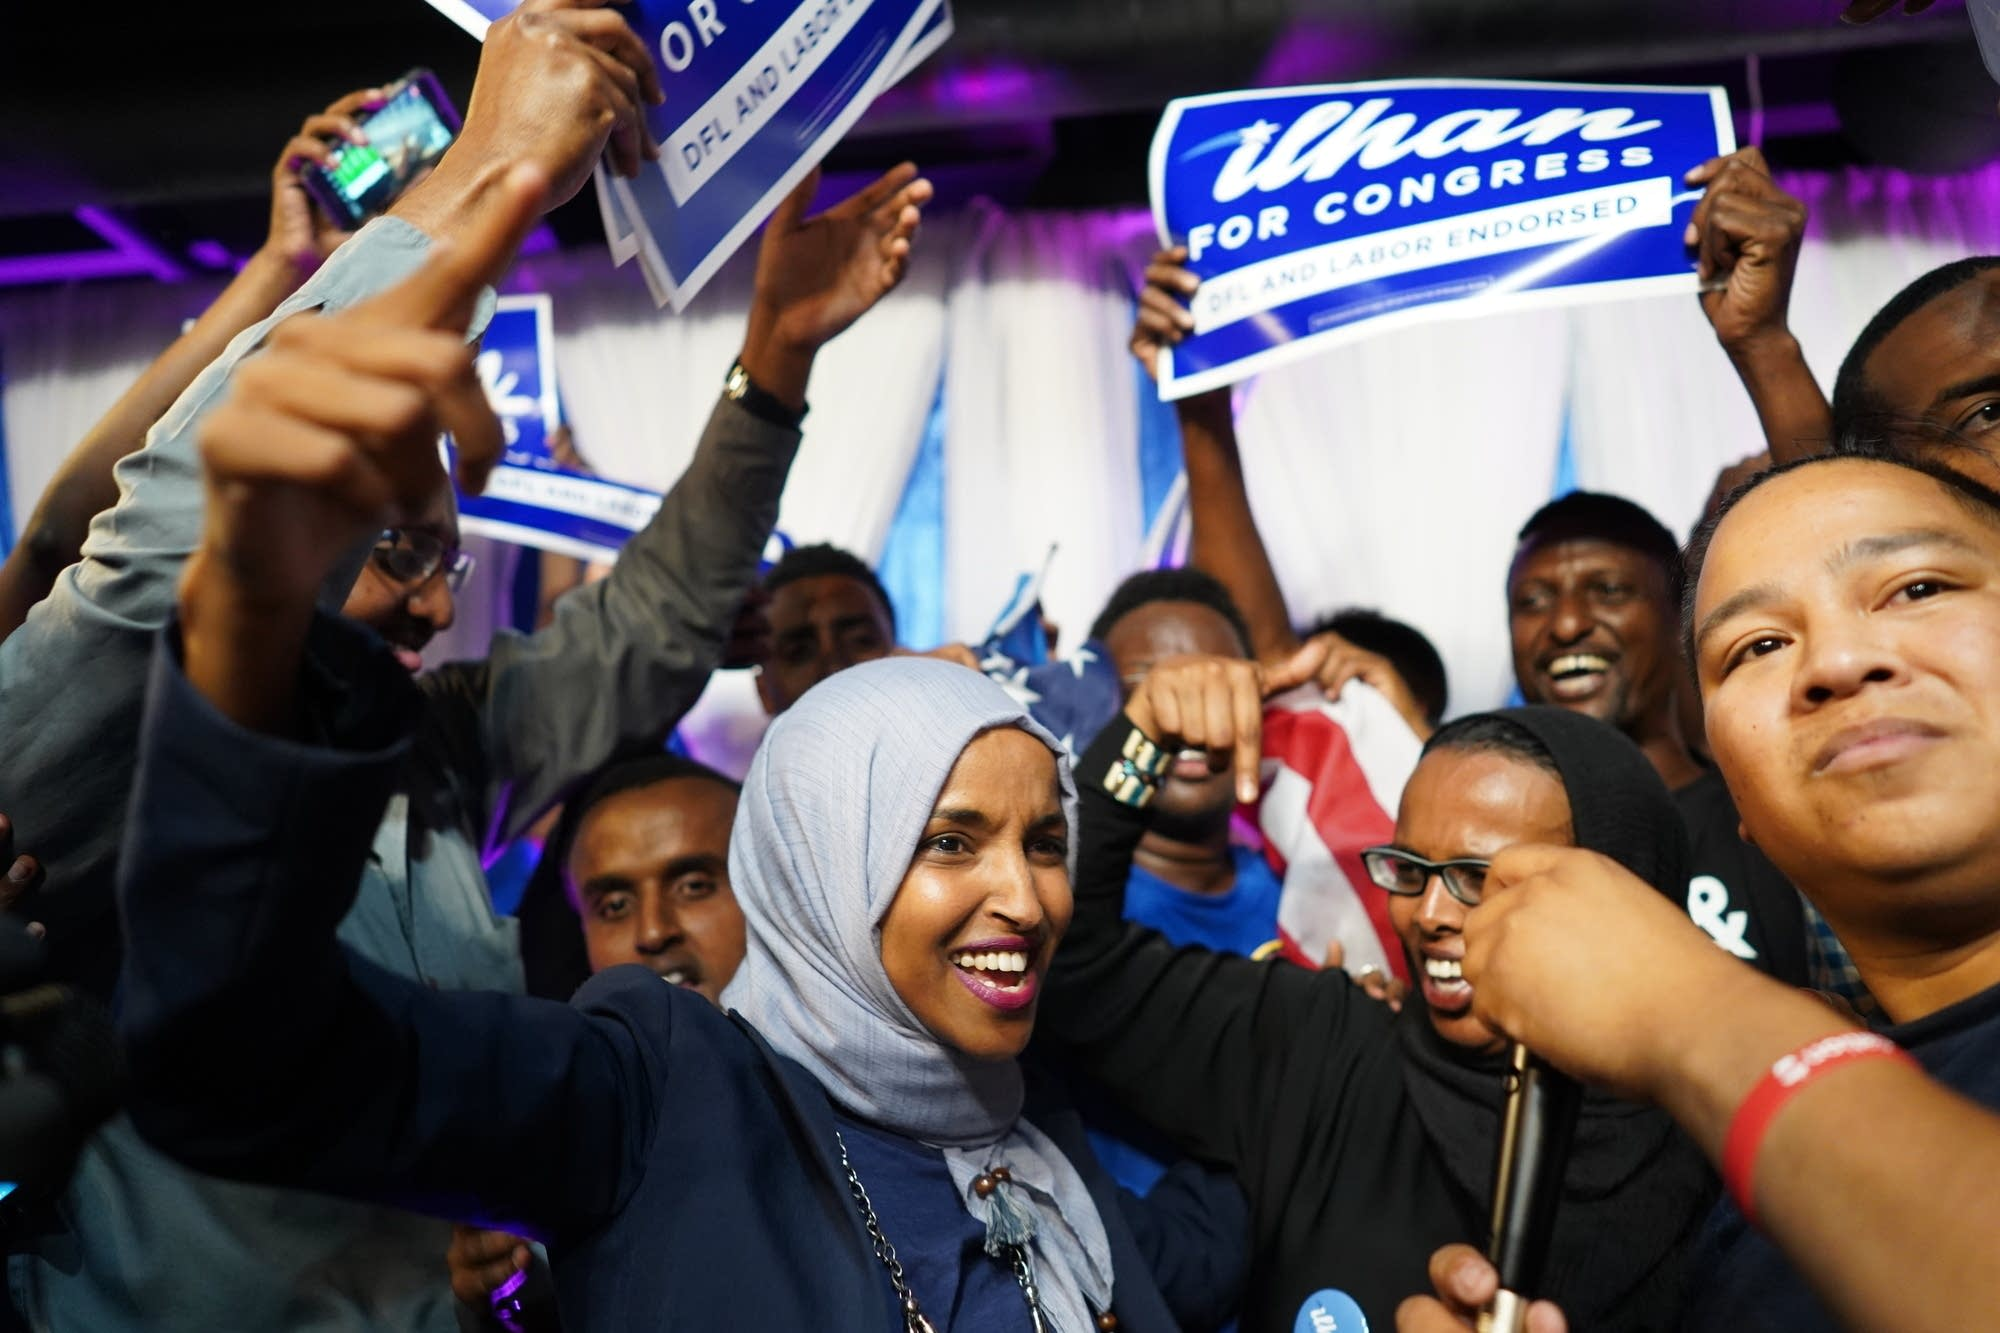 Minnesota Rep. Ilhan Omar, center, celebrates with her supporters.